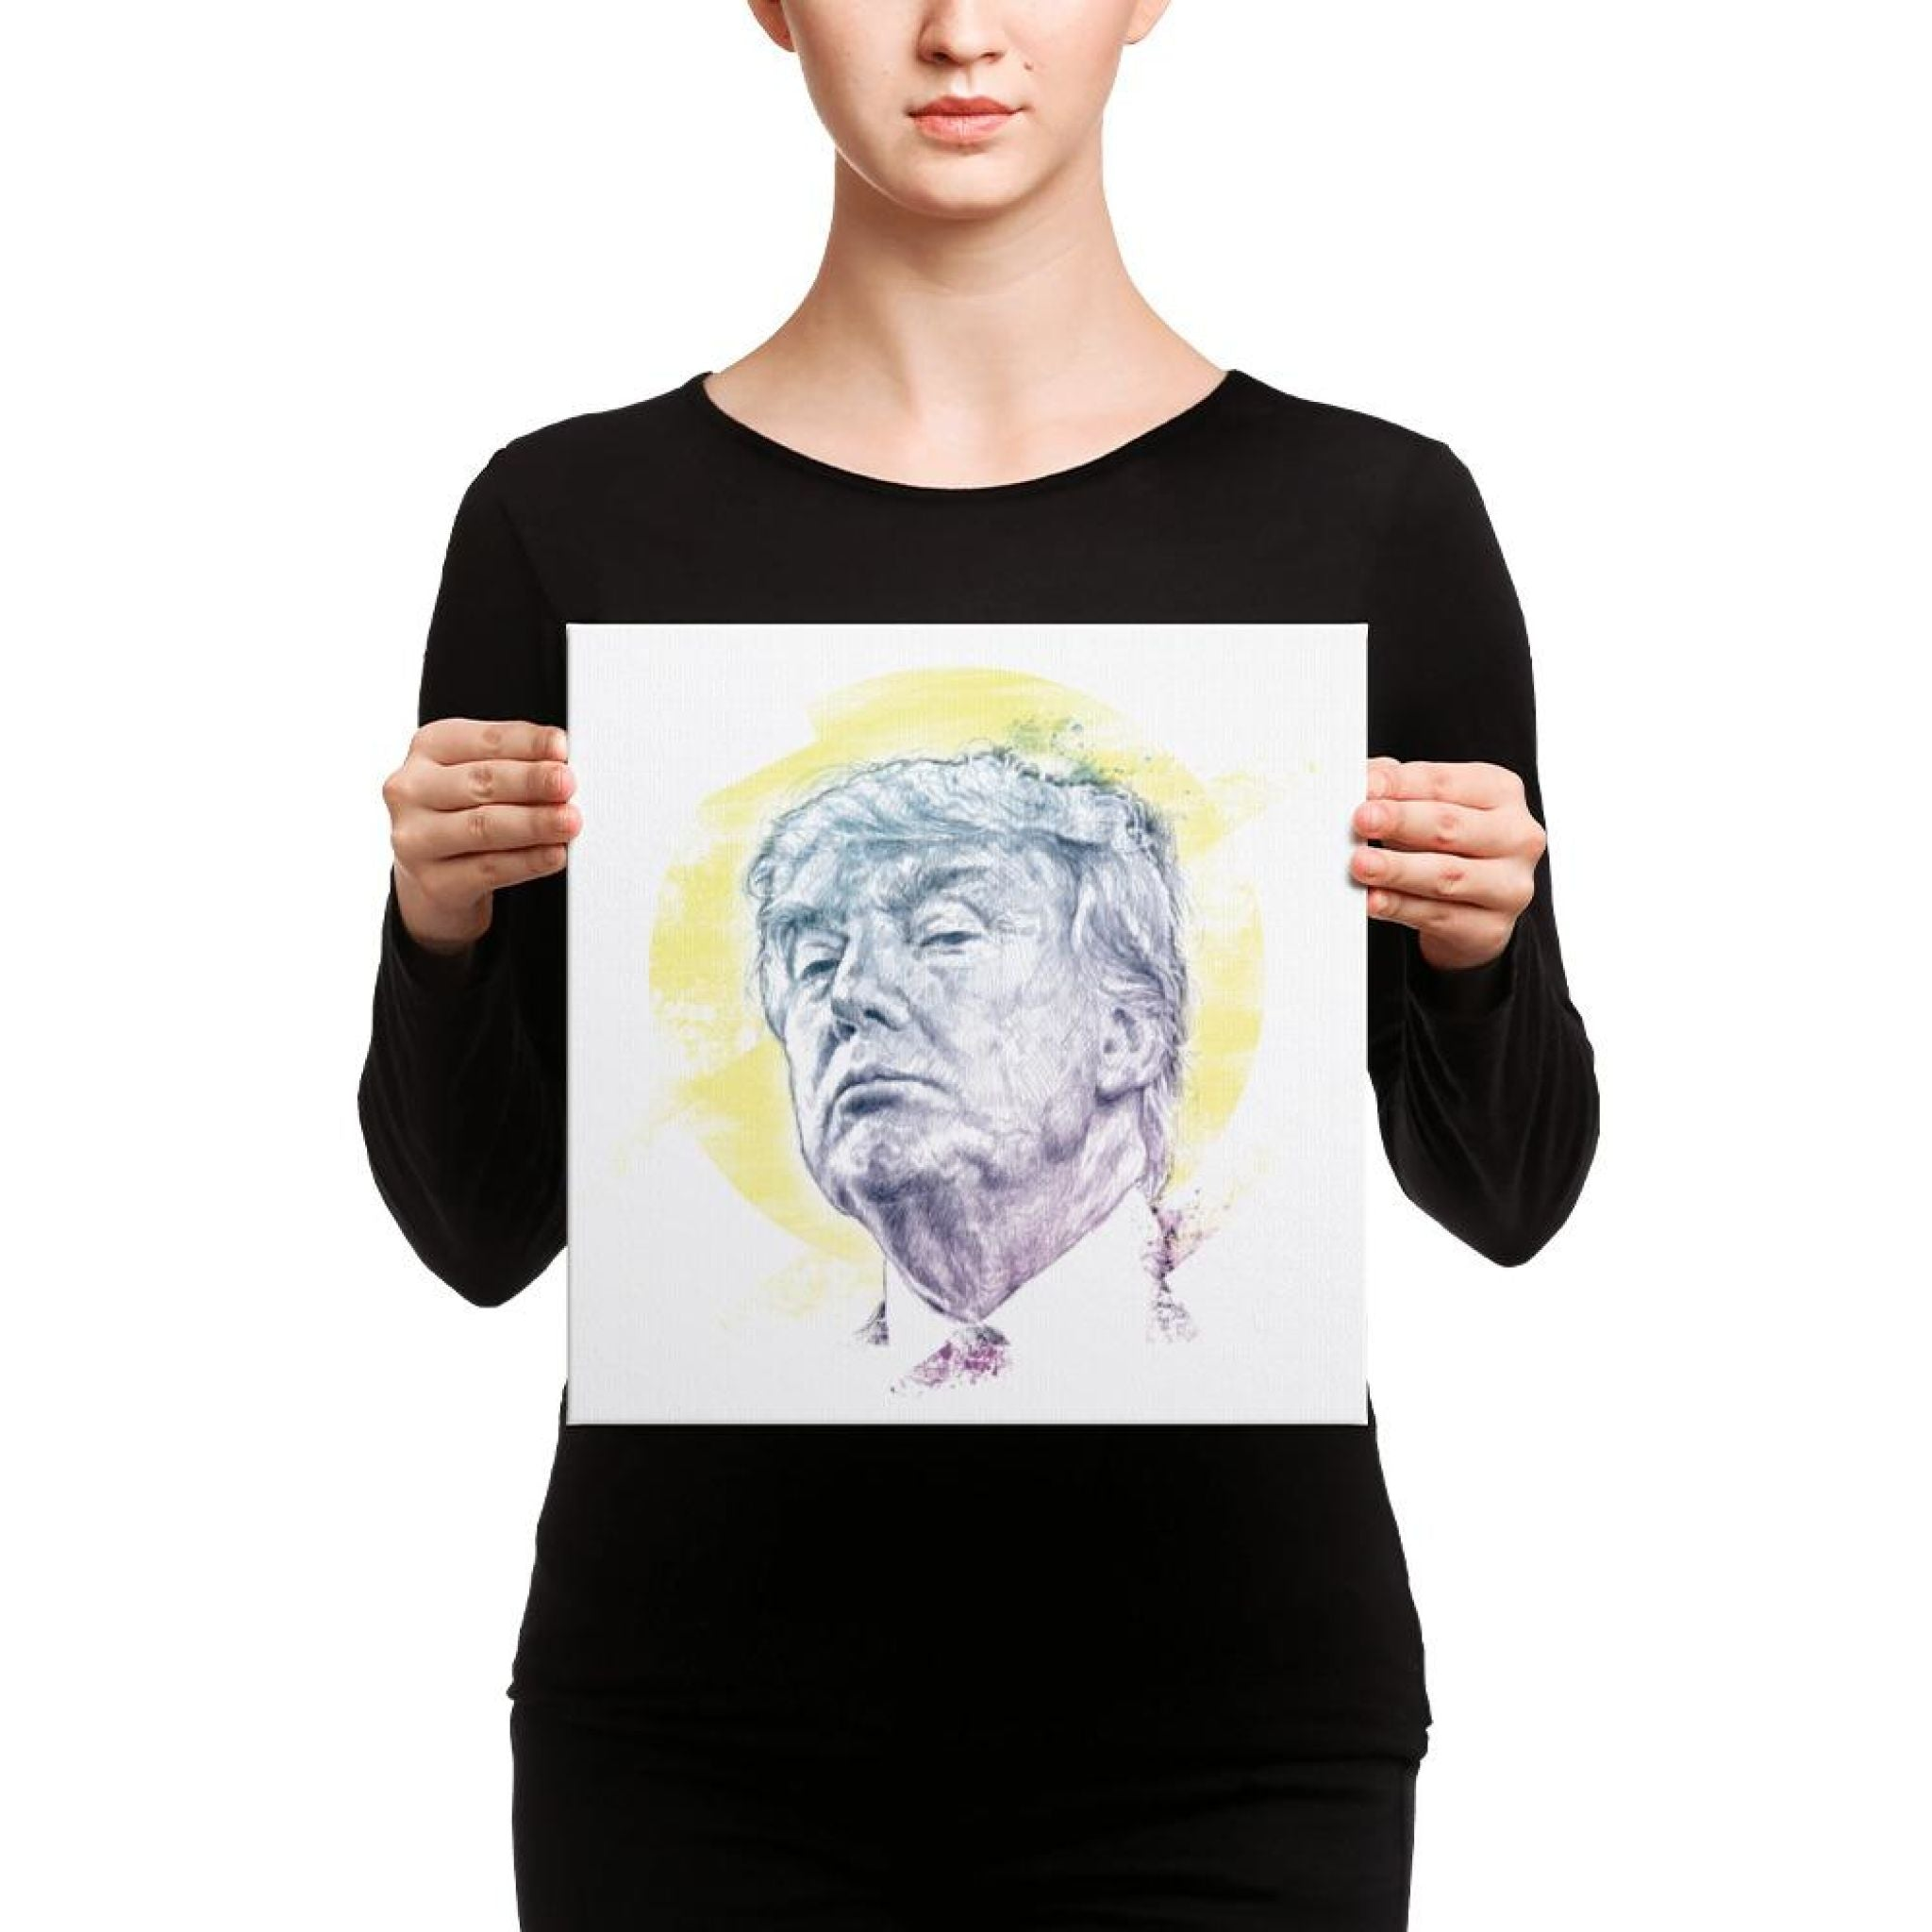 Trump Smug Mug Canvas 12×12 Canvas Chadlonius